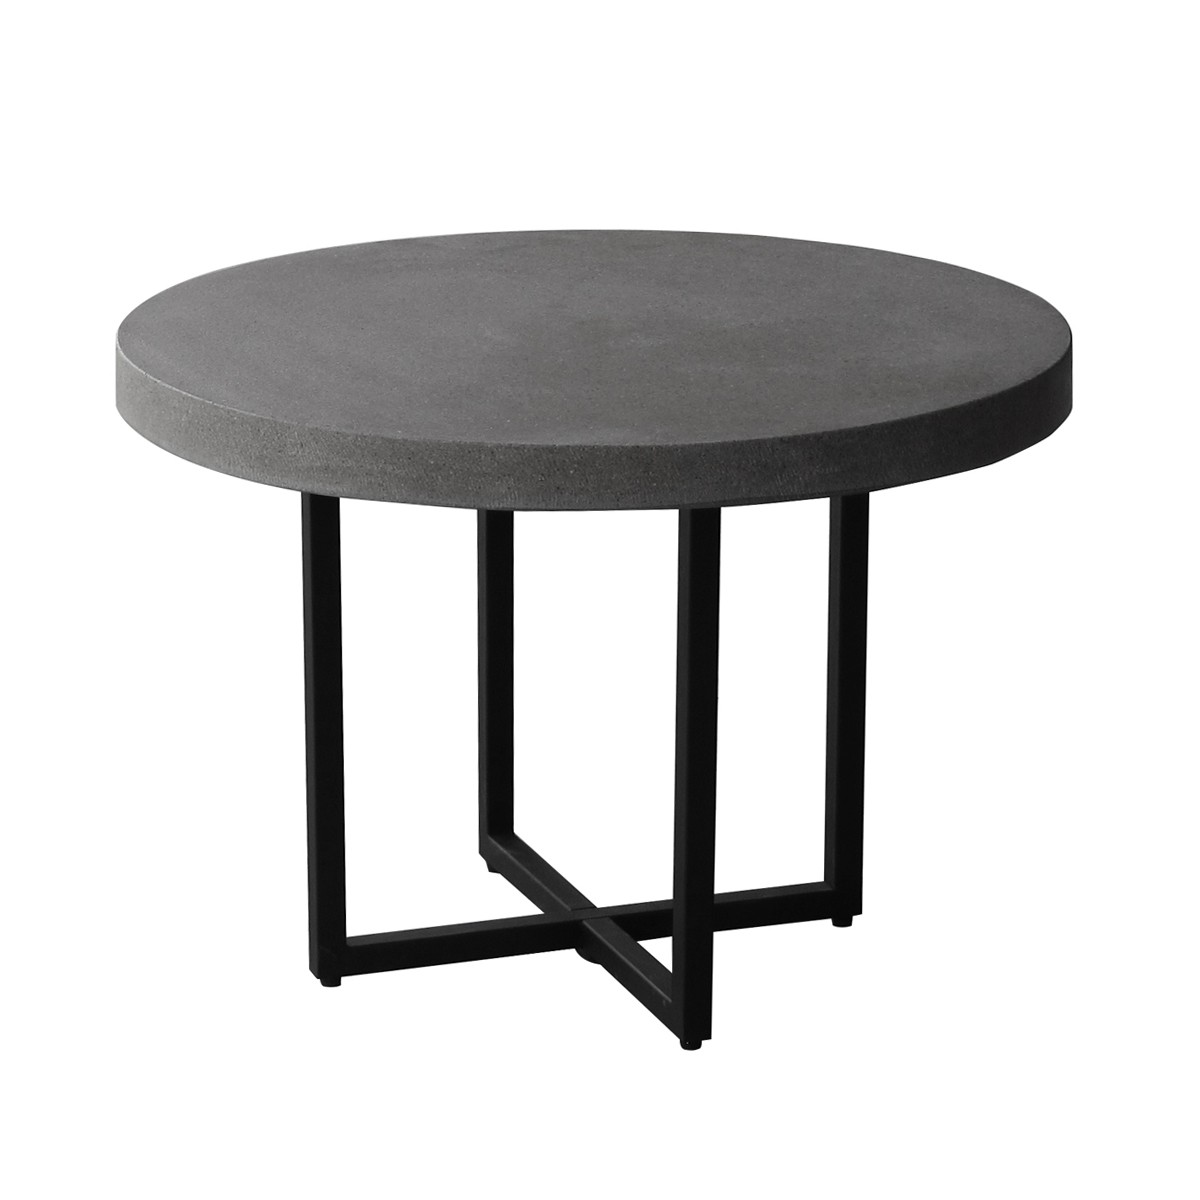 Table basse ronde lavastone koya design - Tables basses rondes ...